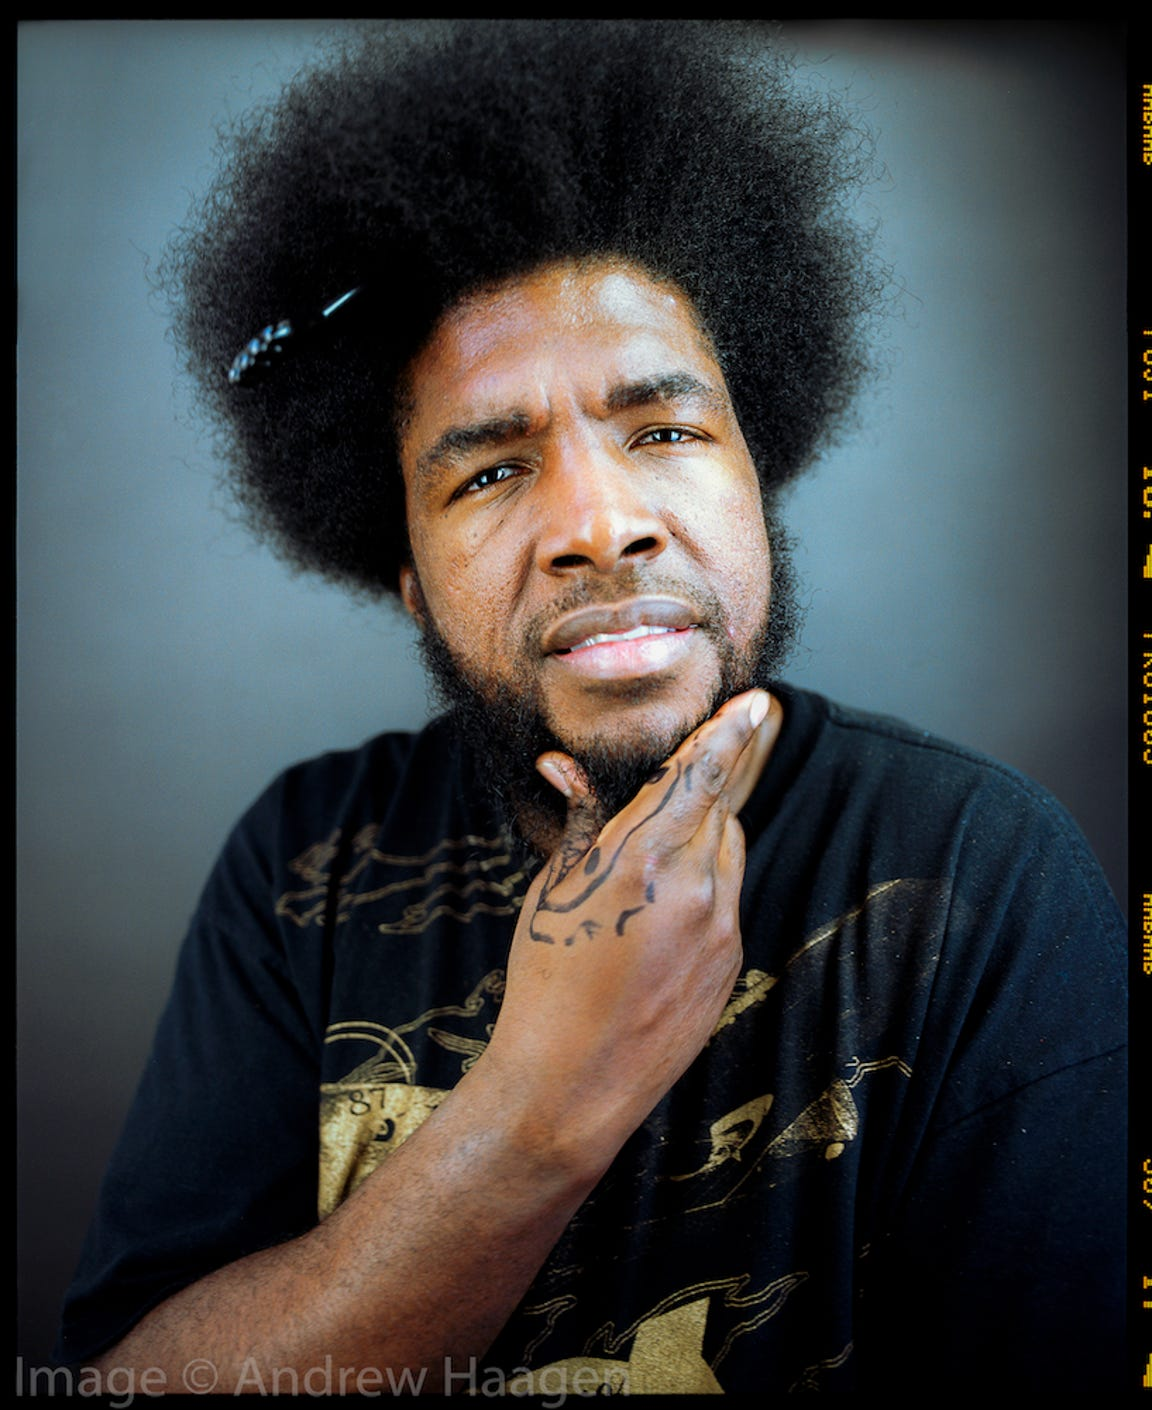 Questlove enjoyed the collaborative process in creating his portrait with Andrew Haagen.